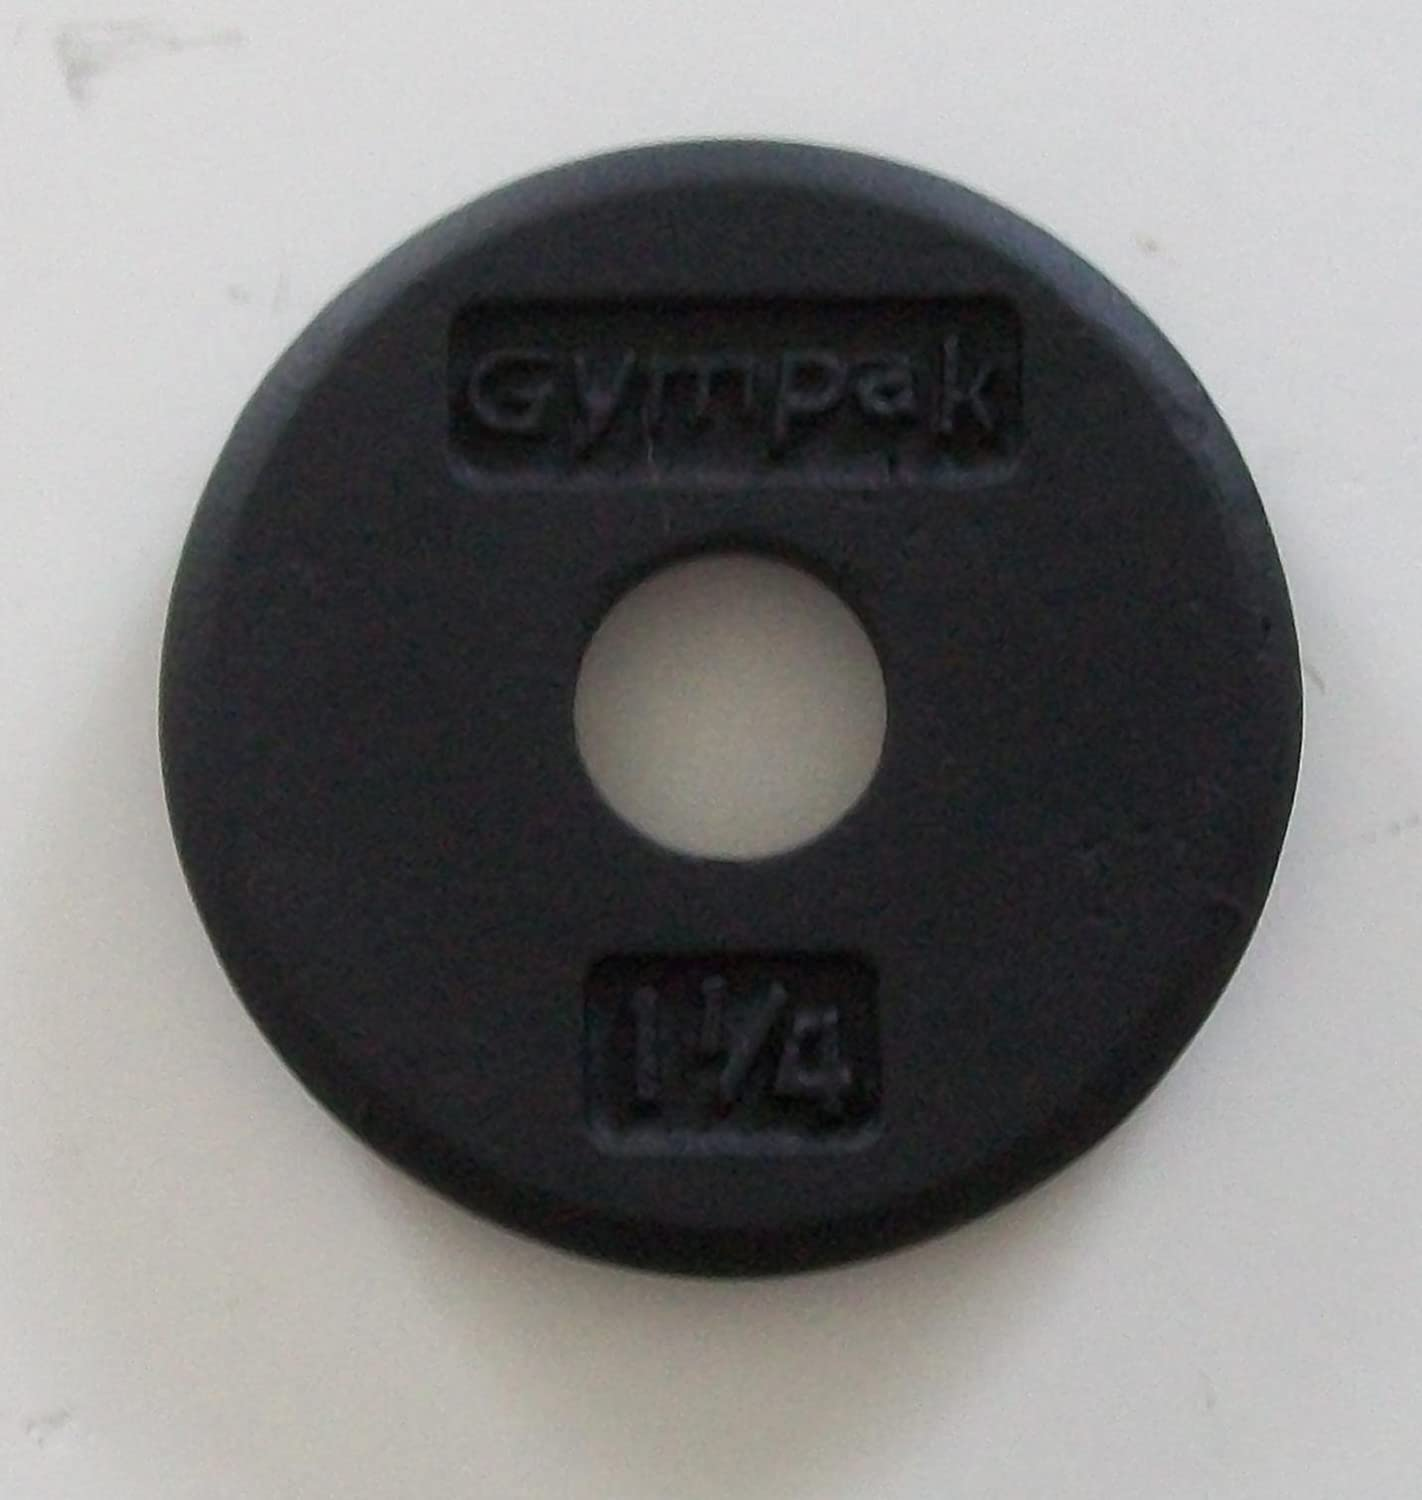 1 1 4 lb. Black or Grey Plates for Standard Bar with 1 diameter sleeves Pair .